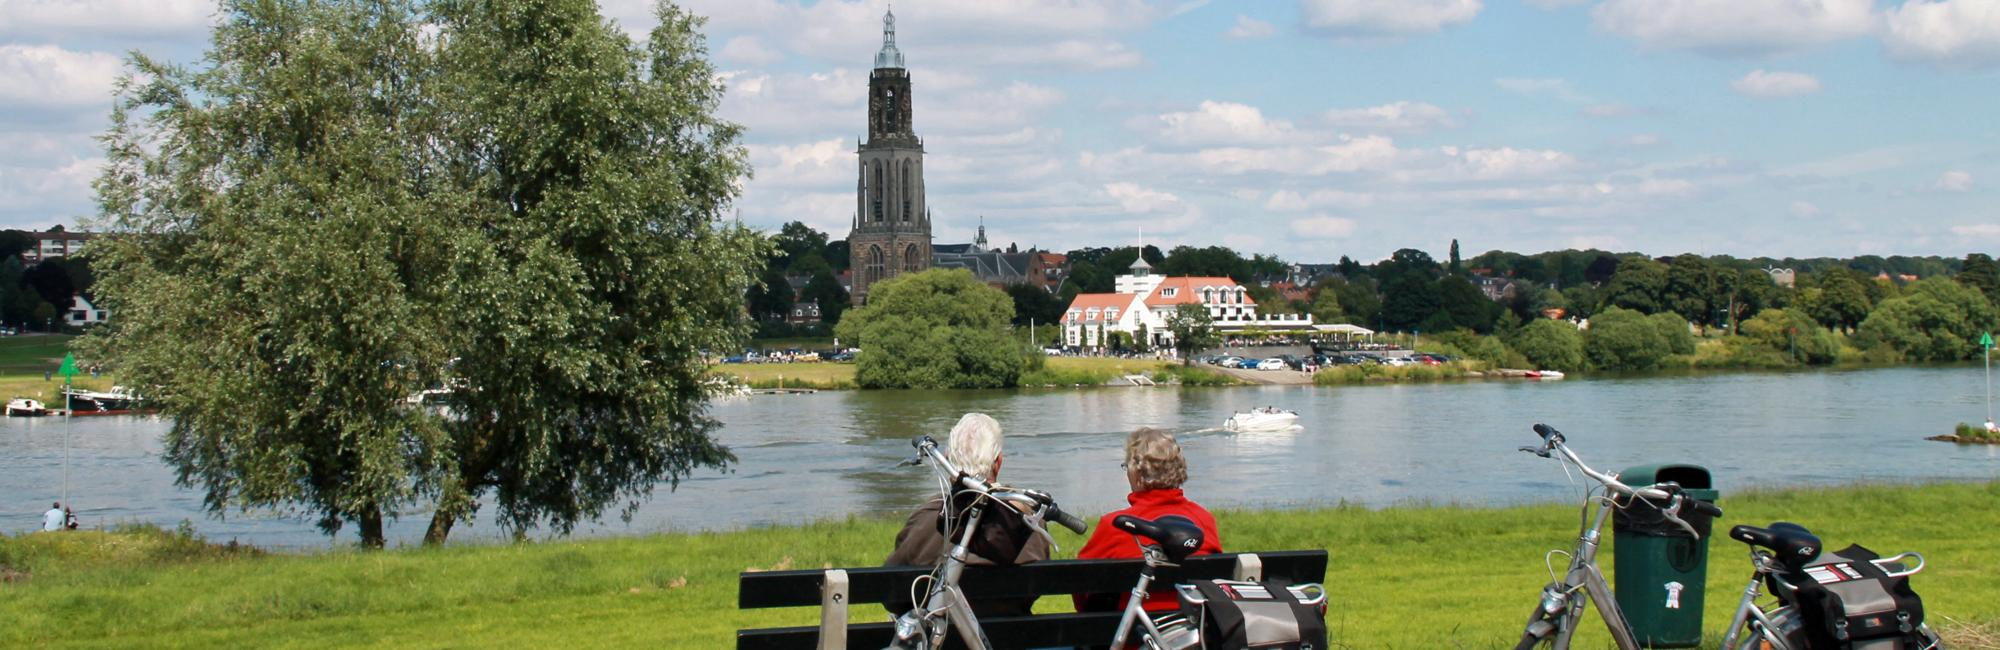 Over onze fietsvakanties in Nederland - Dutch Bike Tours